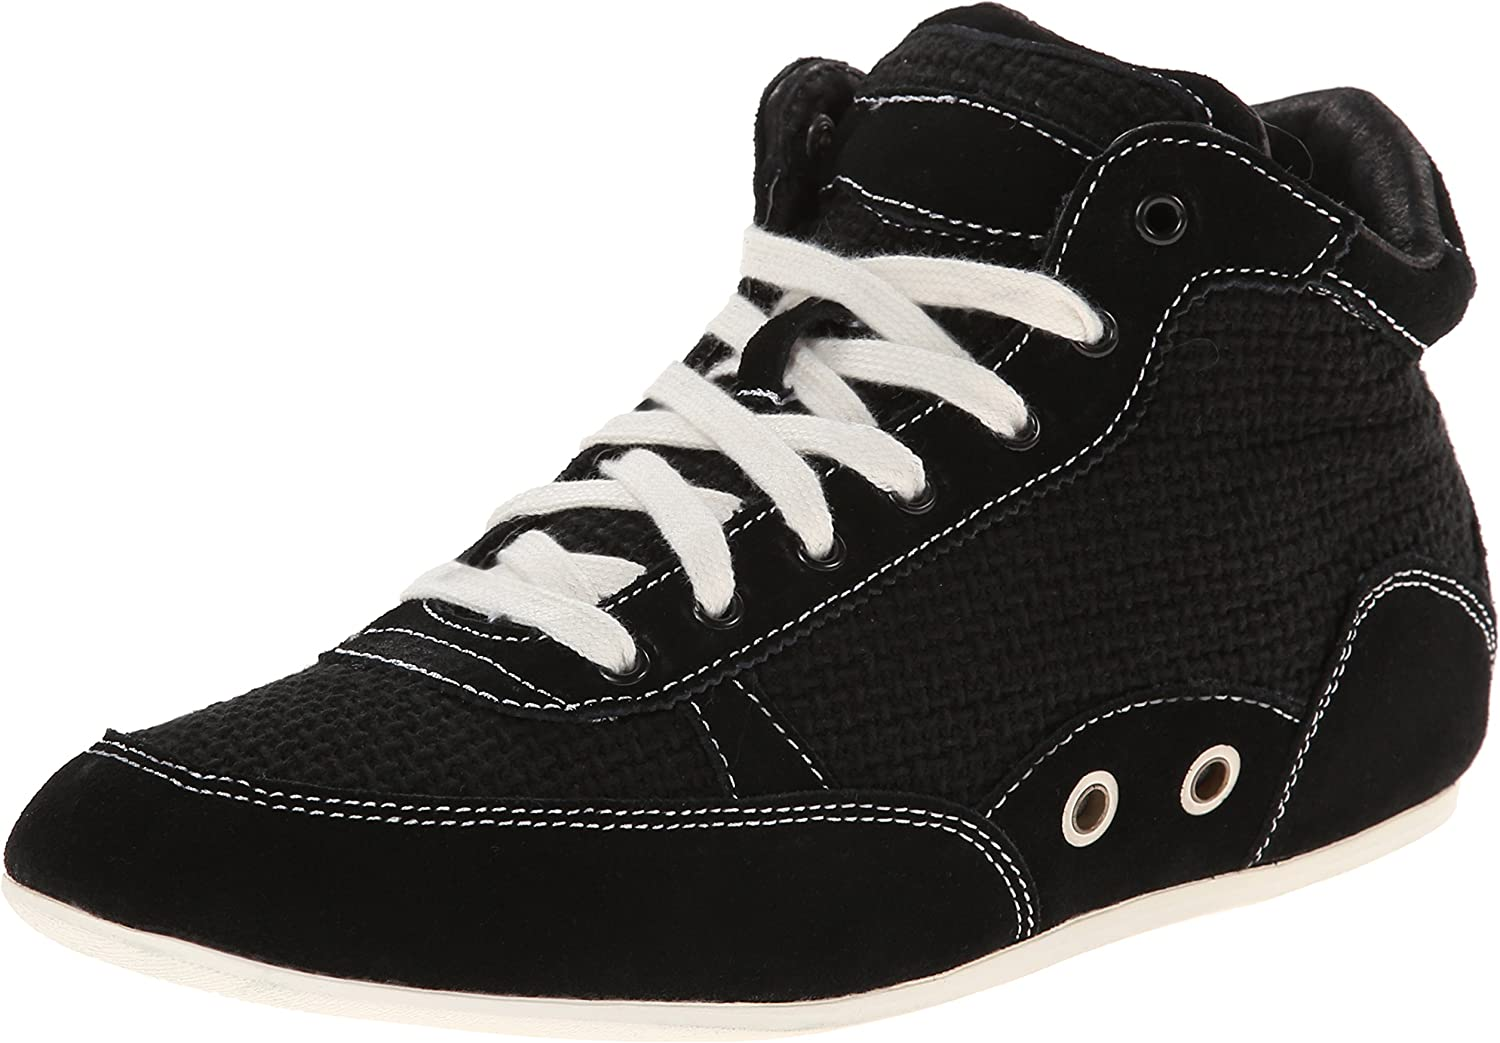 Volatile Kicks Women's Boxer Fashion Sneaker